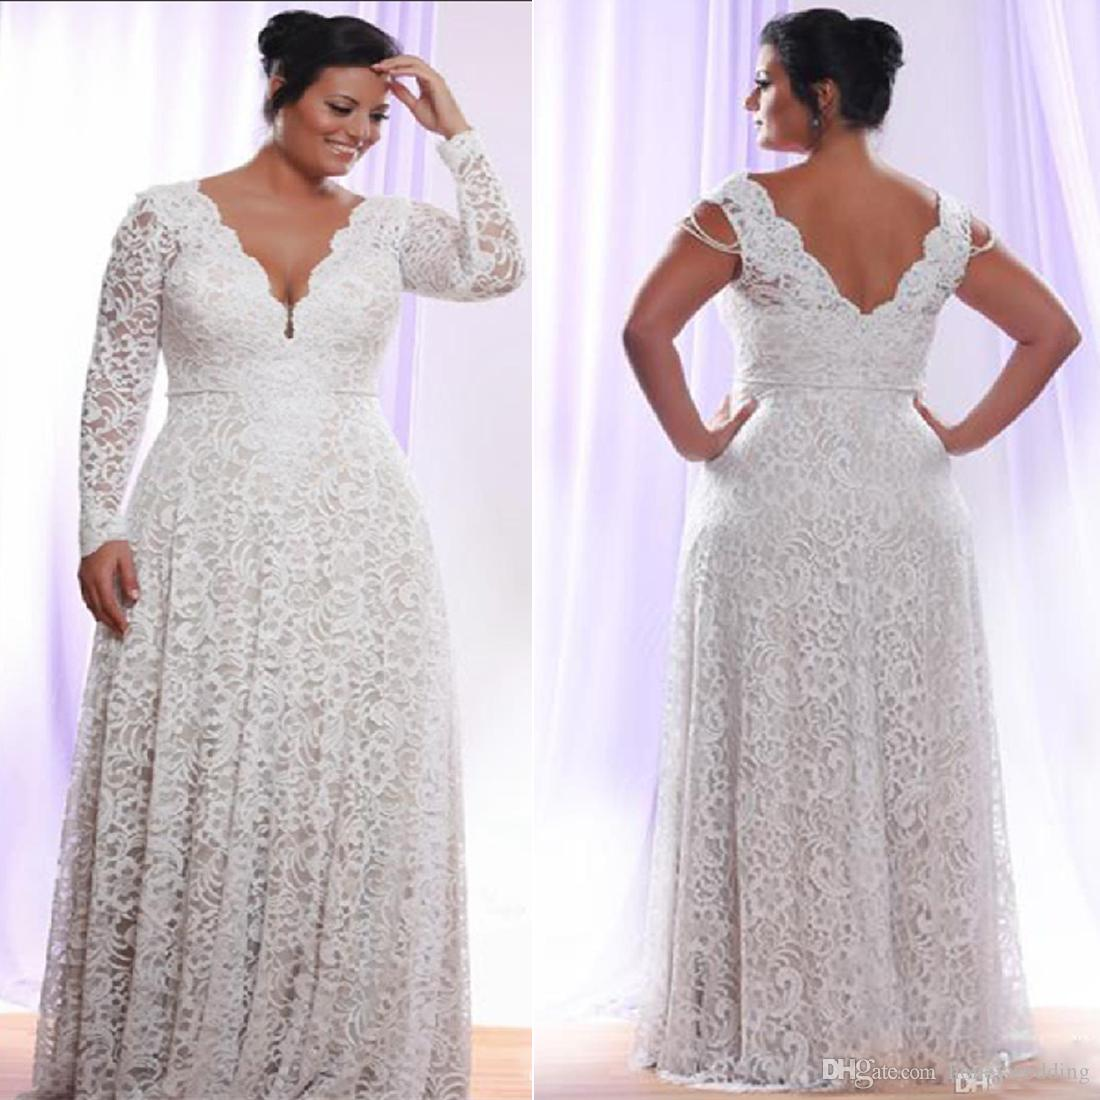 36b8a78b1f5 Discount Cheap Full Lace Plus Size Wedding Dresses Long Sleeves Bridal Gown  Floor Length Wedding Dress Customized Size Simple Gowns Simple Wedding Gowns  ...